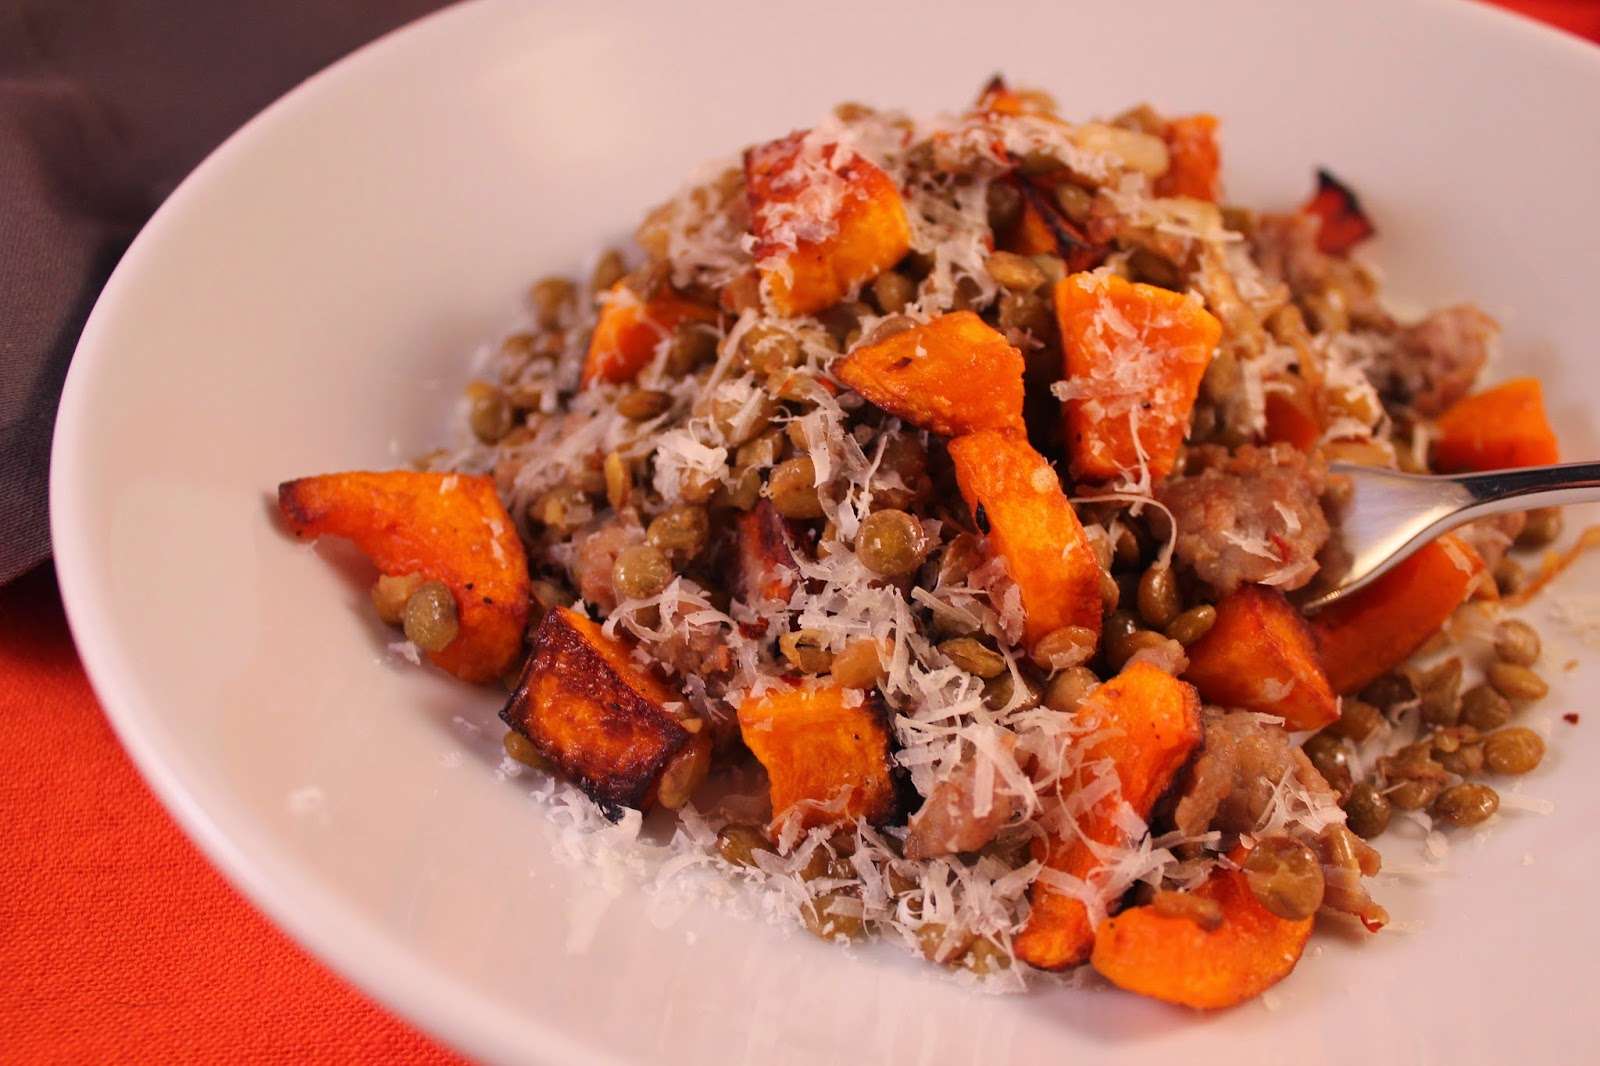 Lentils with sausage and roasted butternut squash